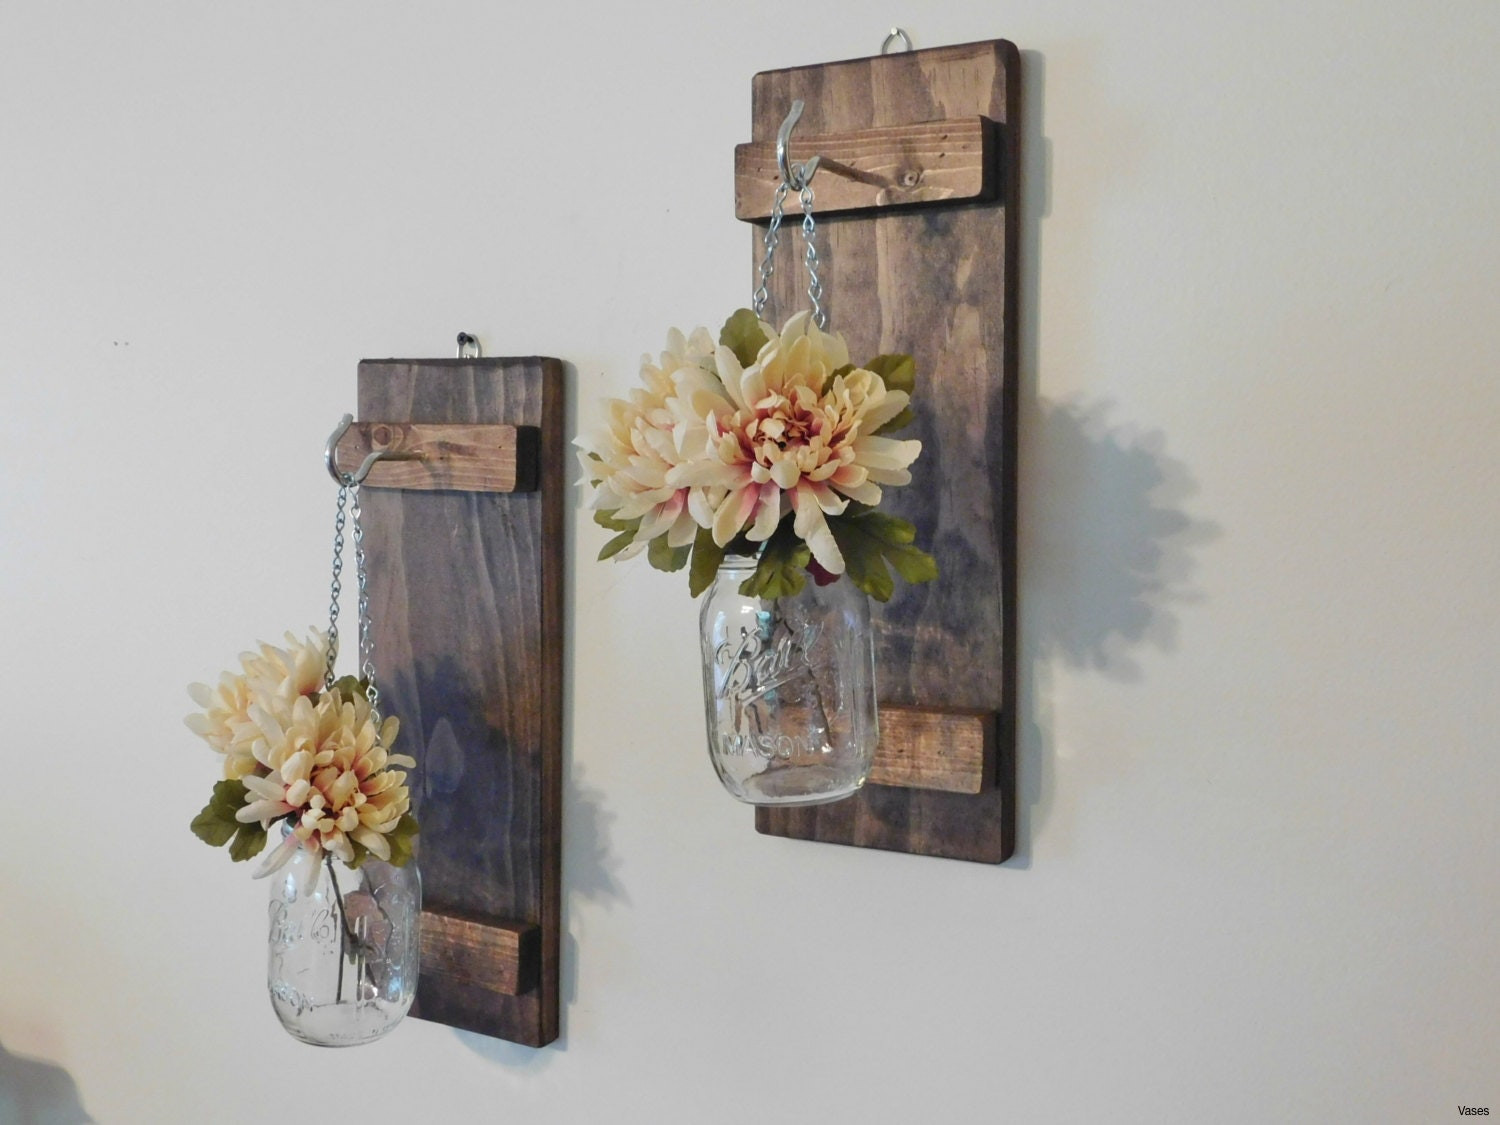 Antique Wall Pocket Vases Of Flower Wall Vase Photograph Design Floating Wall Vases Introh within Flower Wall Vase Photograph Design Floating Wall Vases Introh Mounted Flower Vase I 0d Design Of